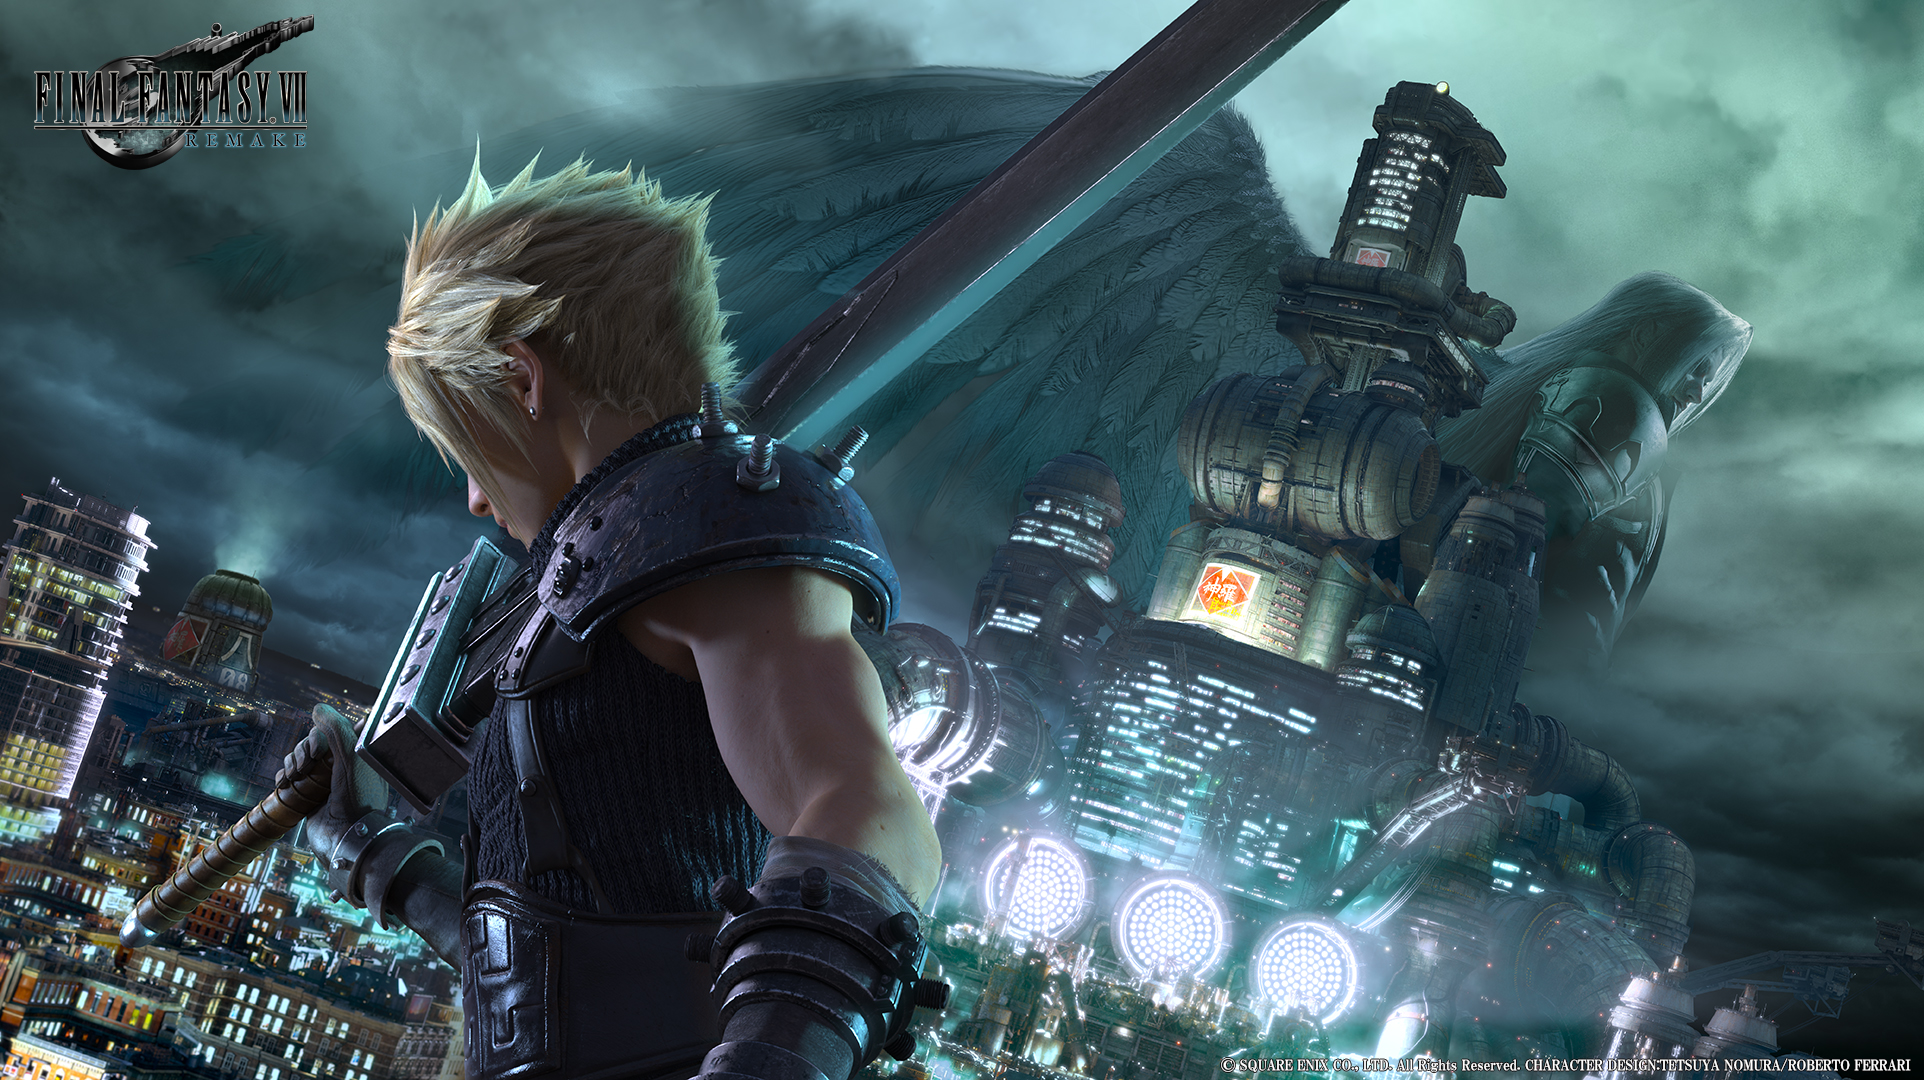 Here's a new look at the Final Fantasy VII remake